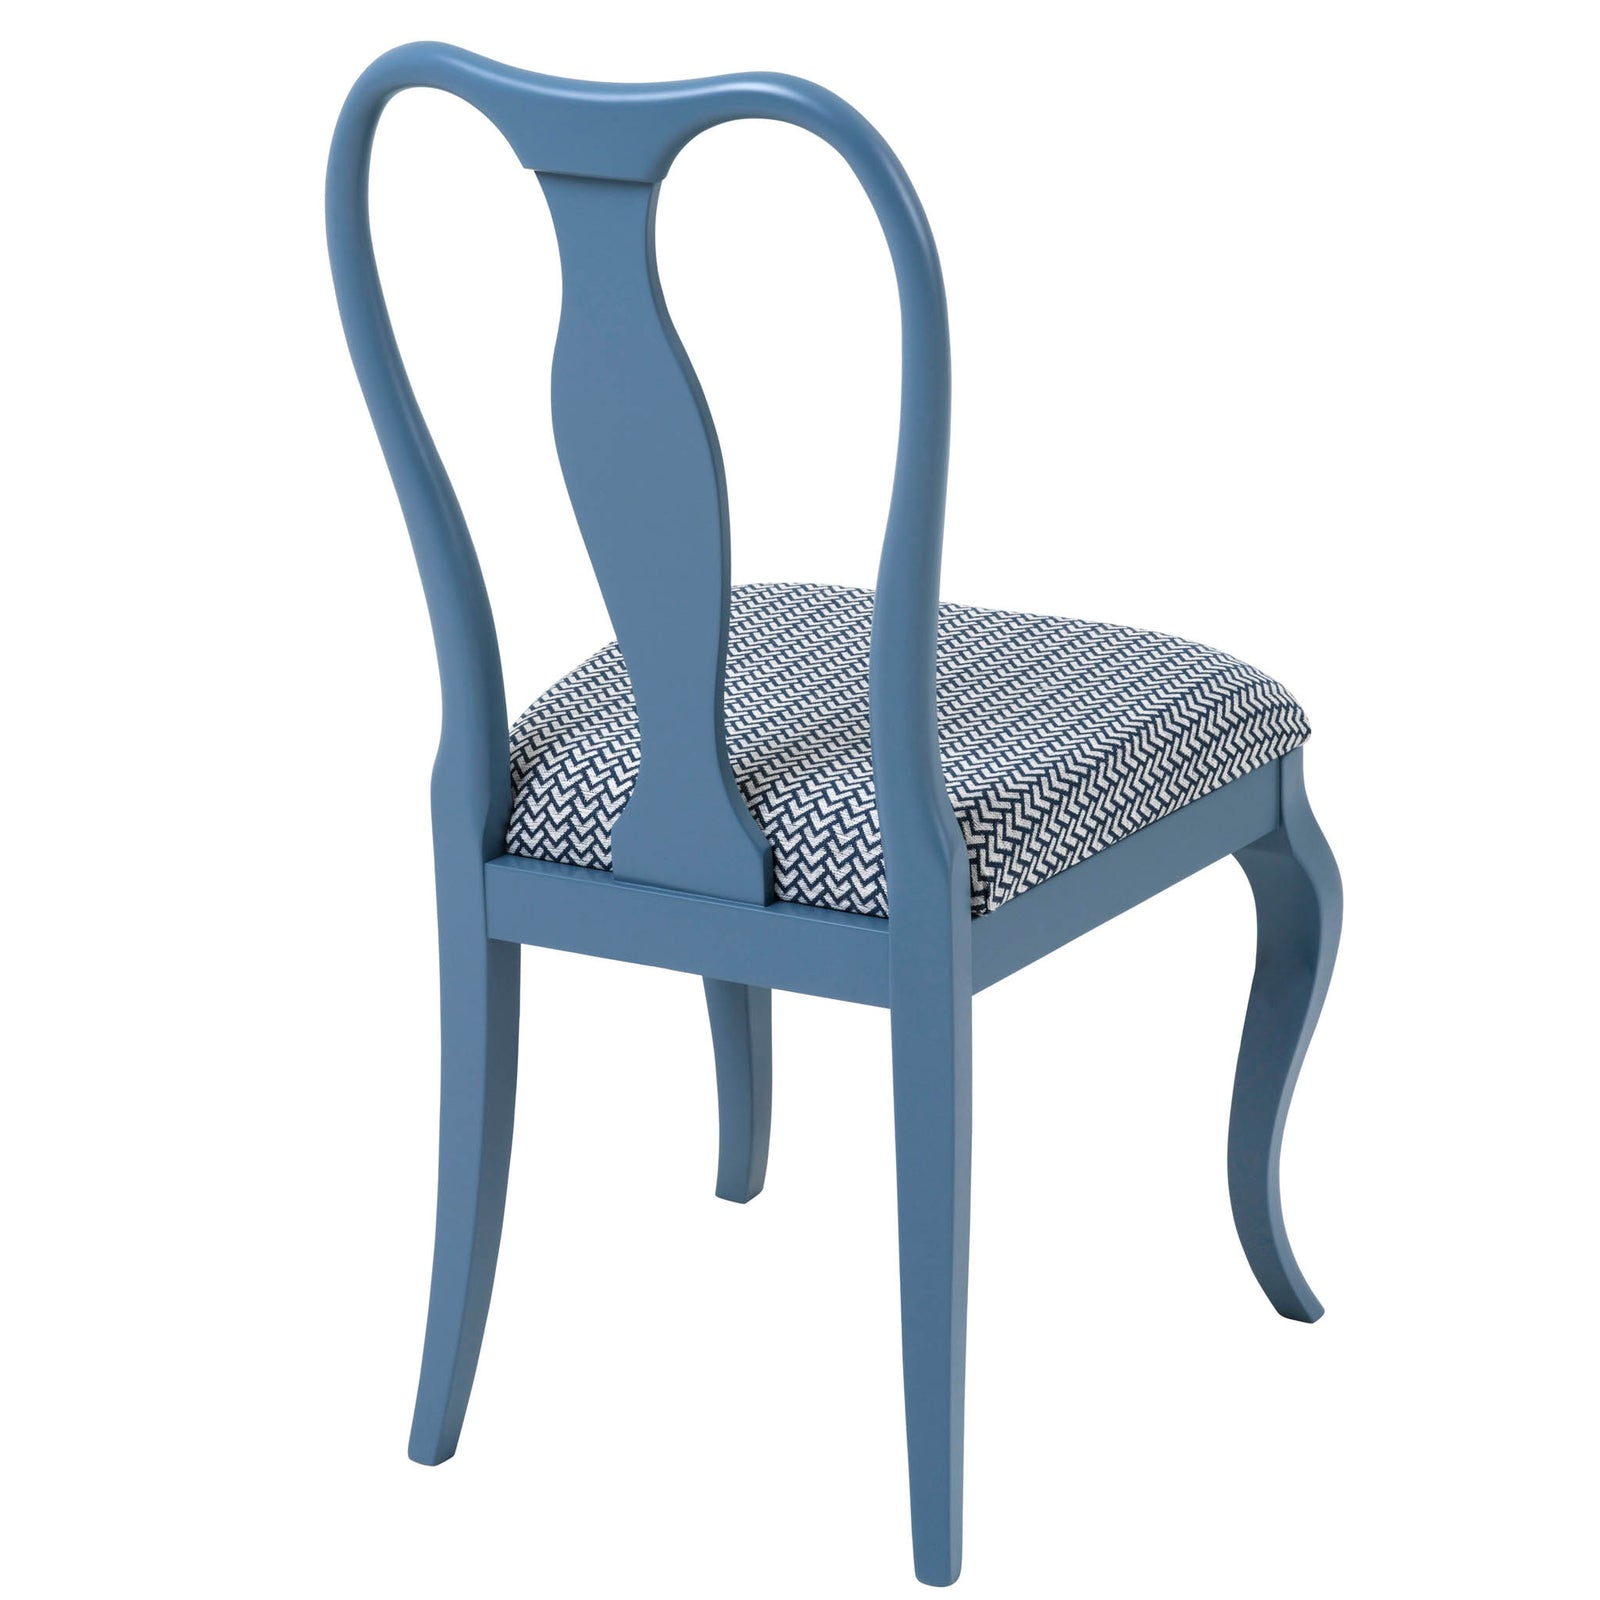 The Marco Side Chair Upholstered in the glorious Sanara Indigo from Harlequin